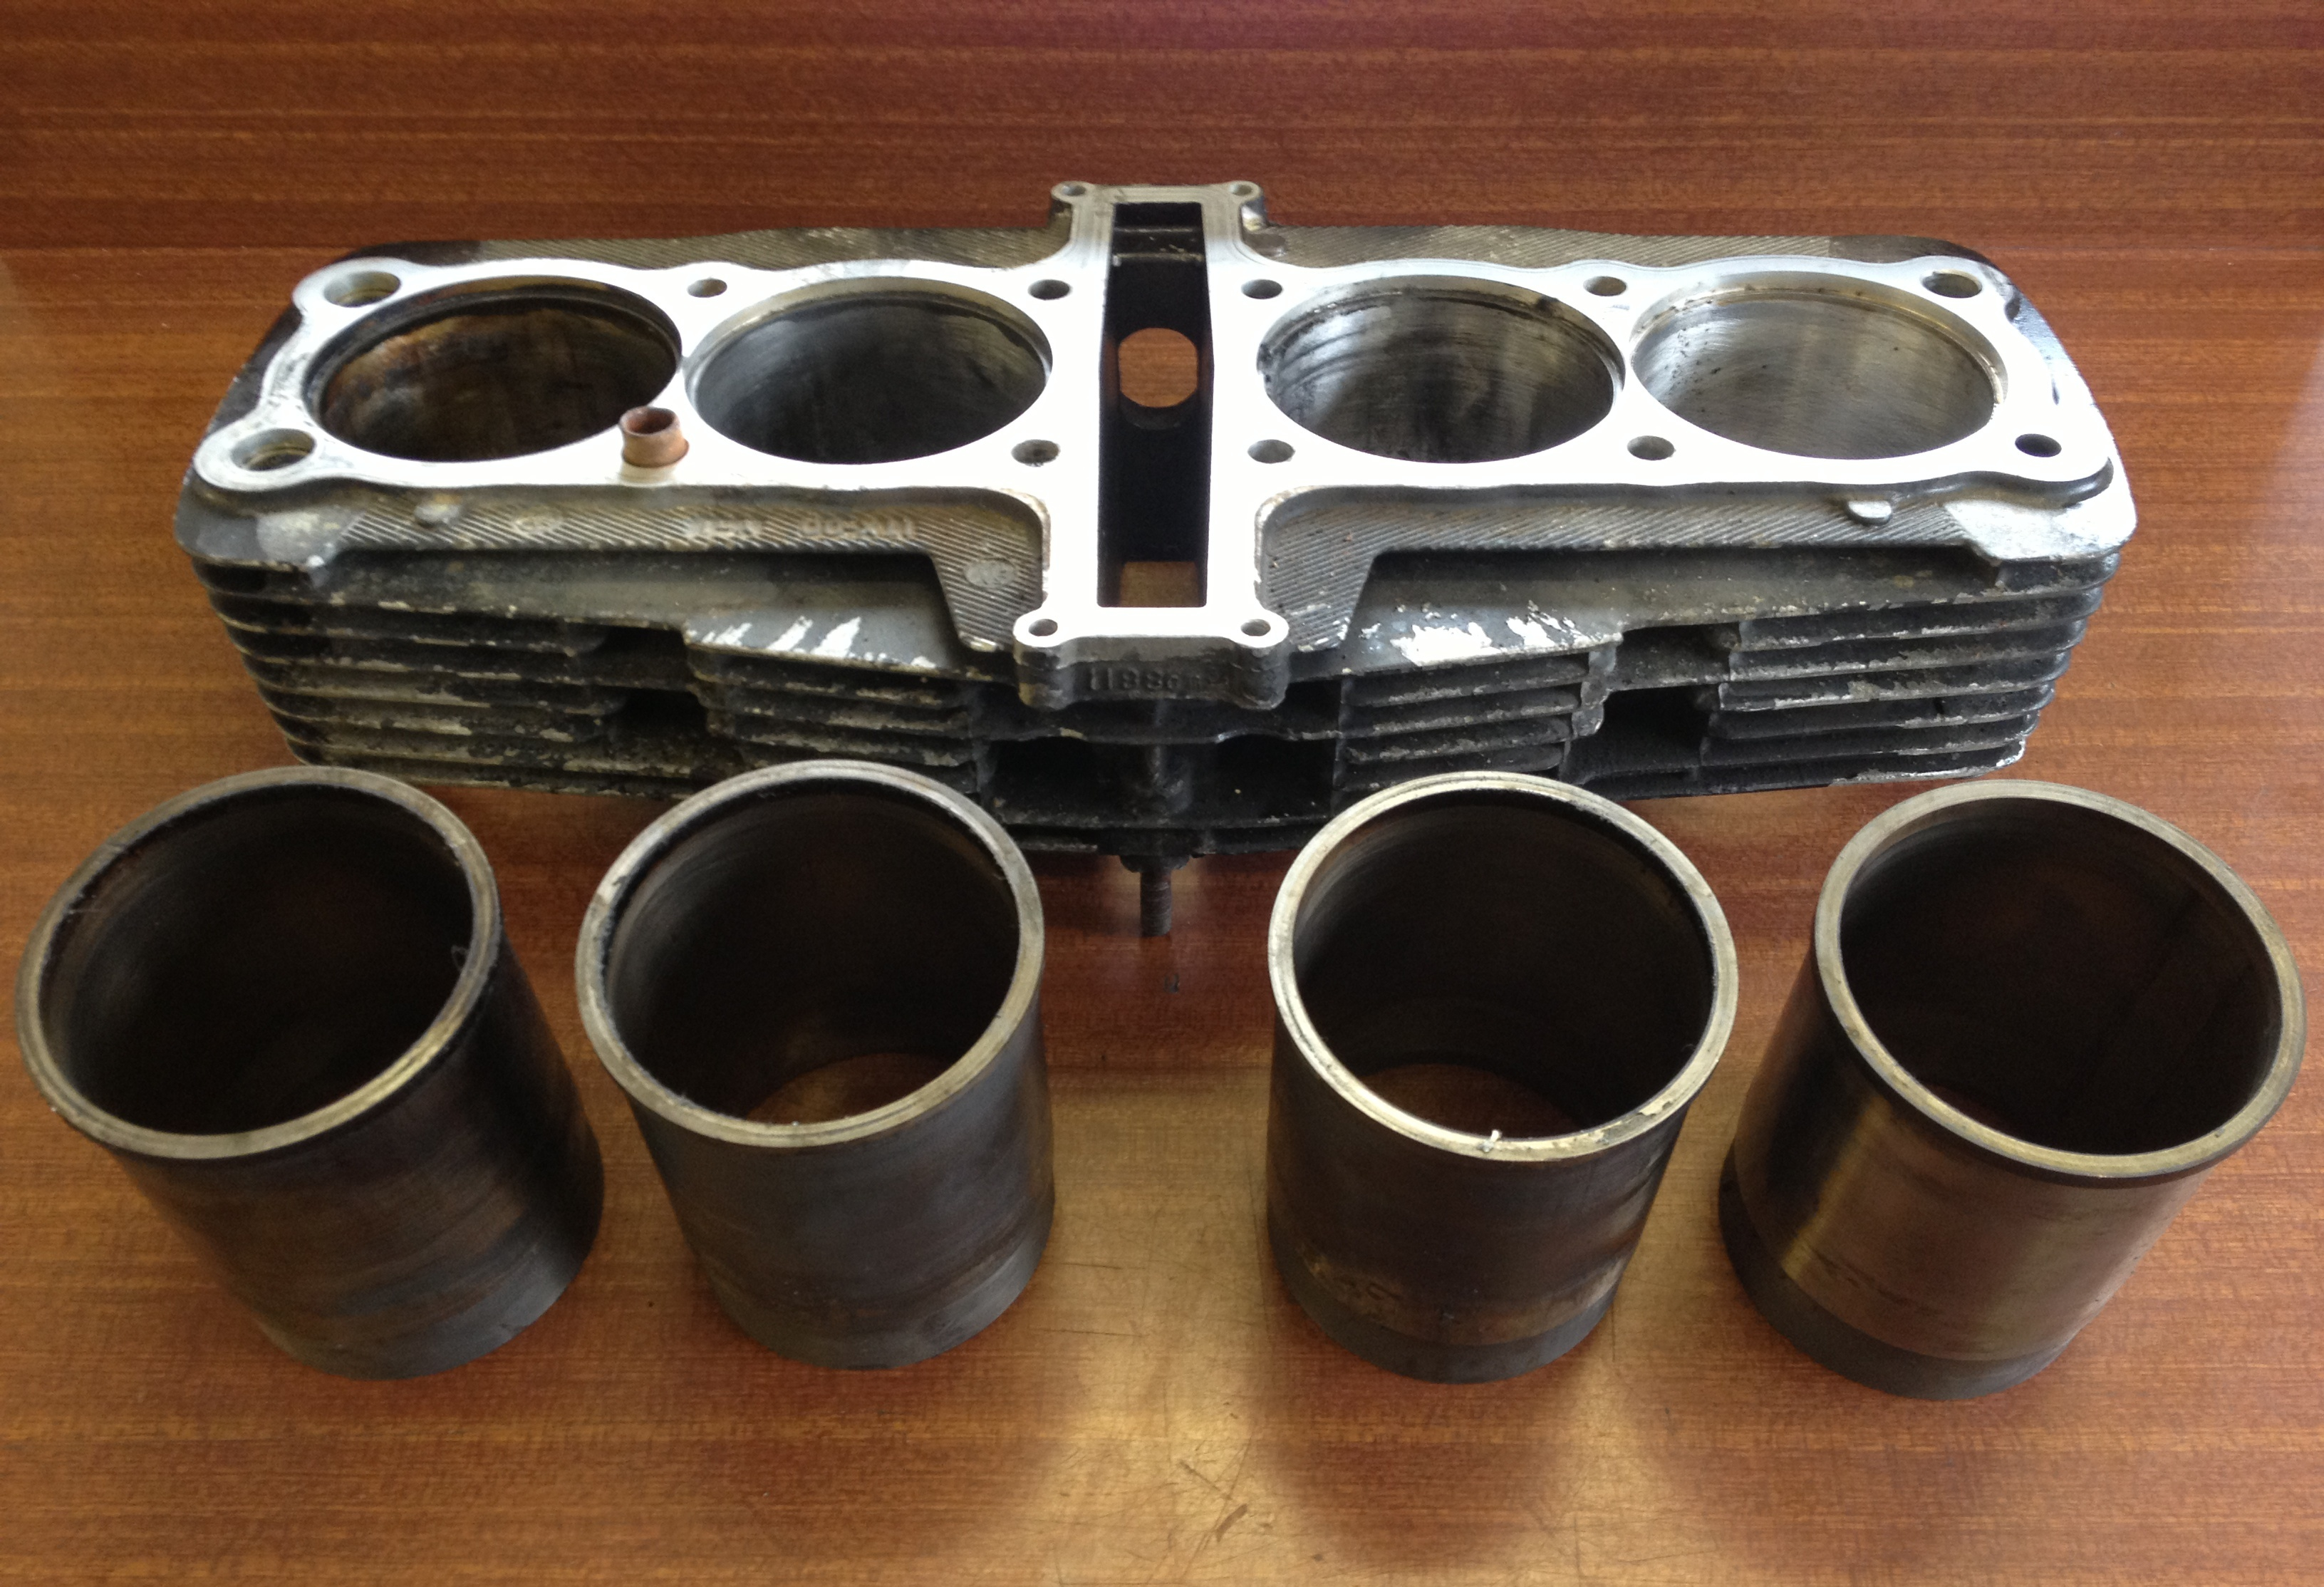 HT Howard - Big bore engine conversions for car and motorcycle